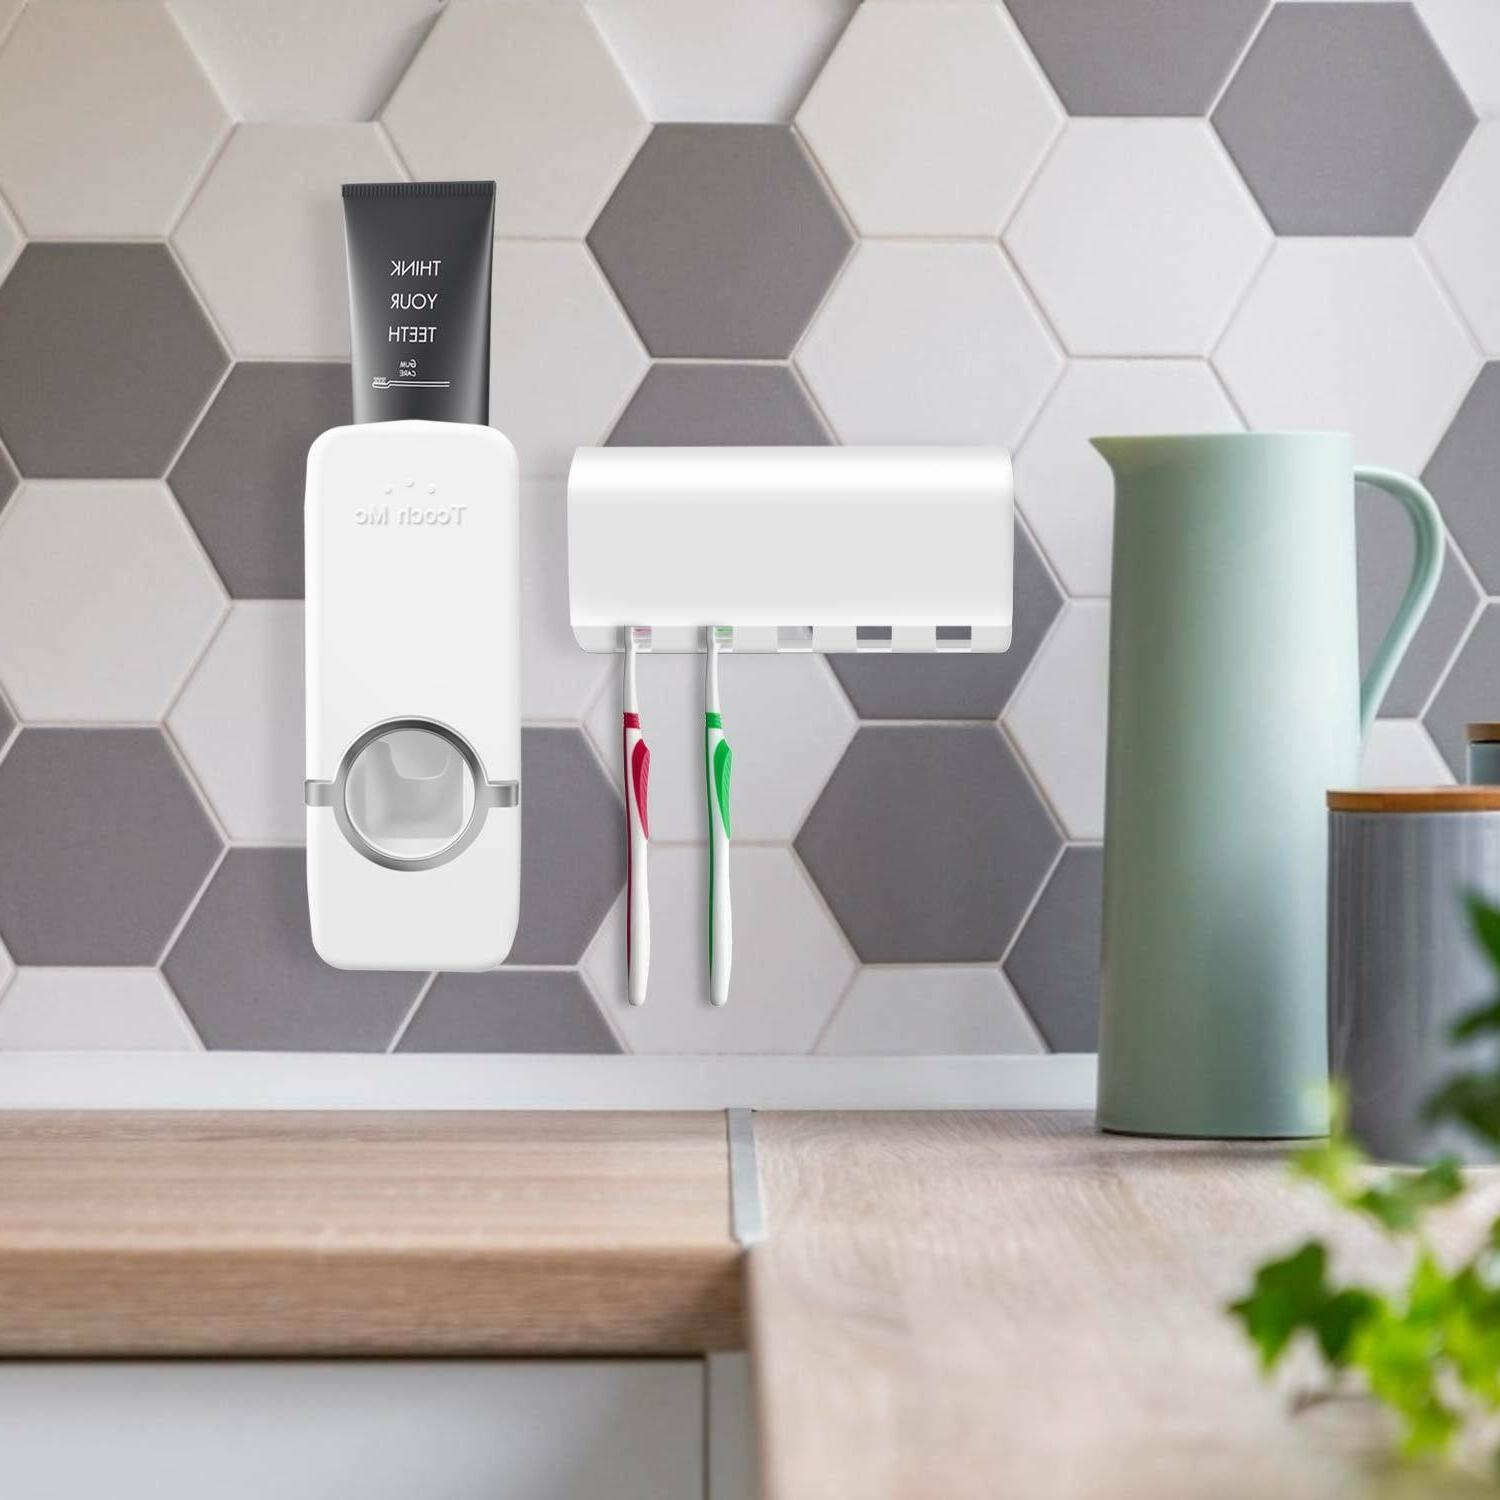 Automatic 5 Toothbrush Wall Mount